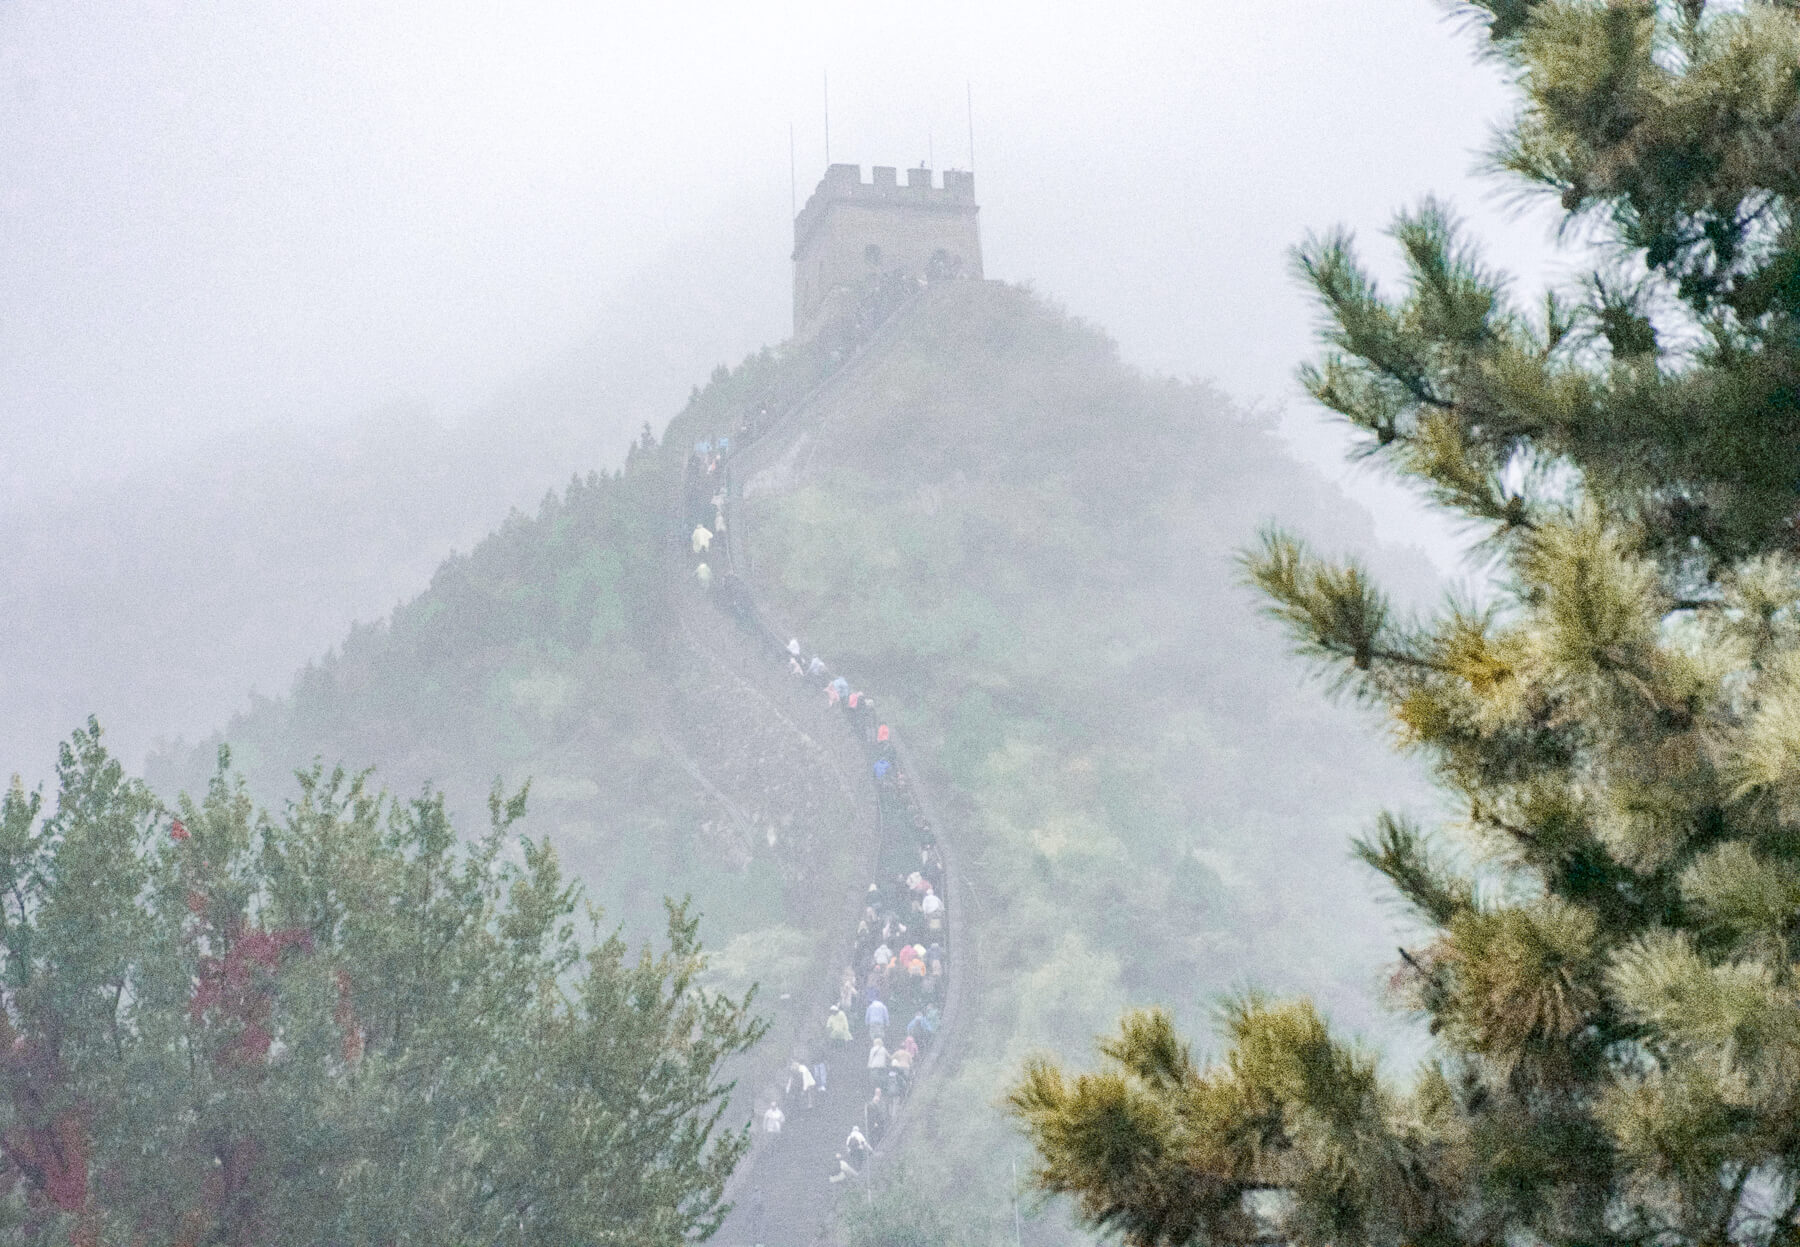 A big group of tourists walking up the Great Wall in the background behind a pine tree